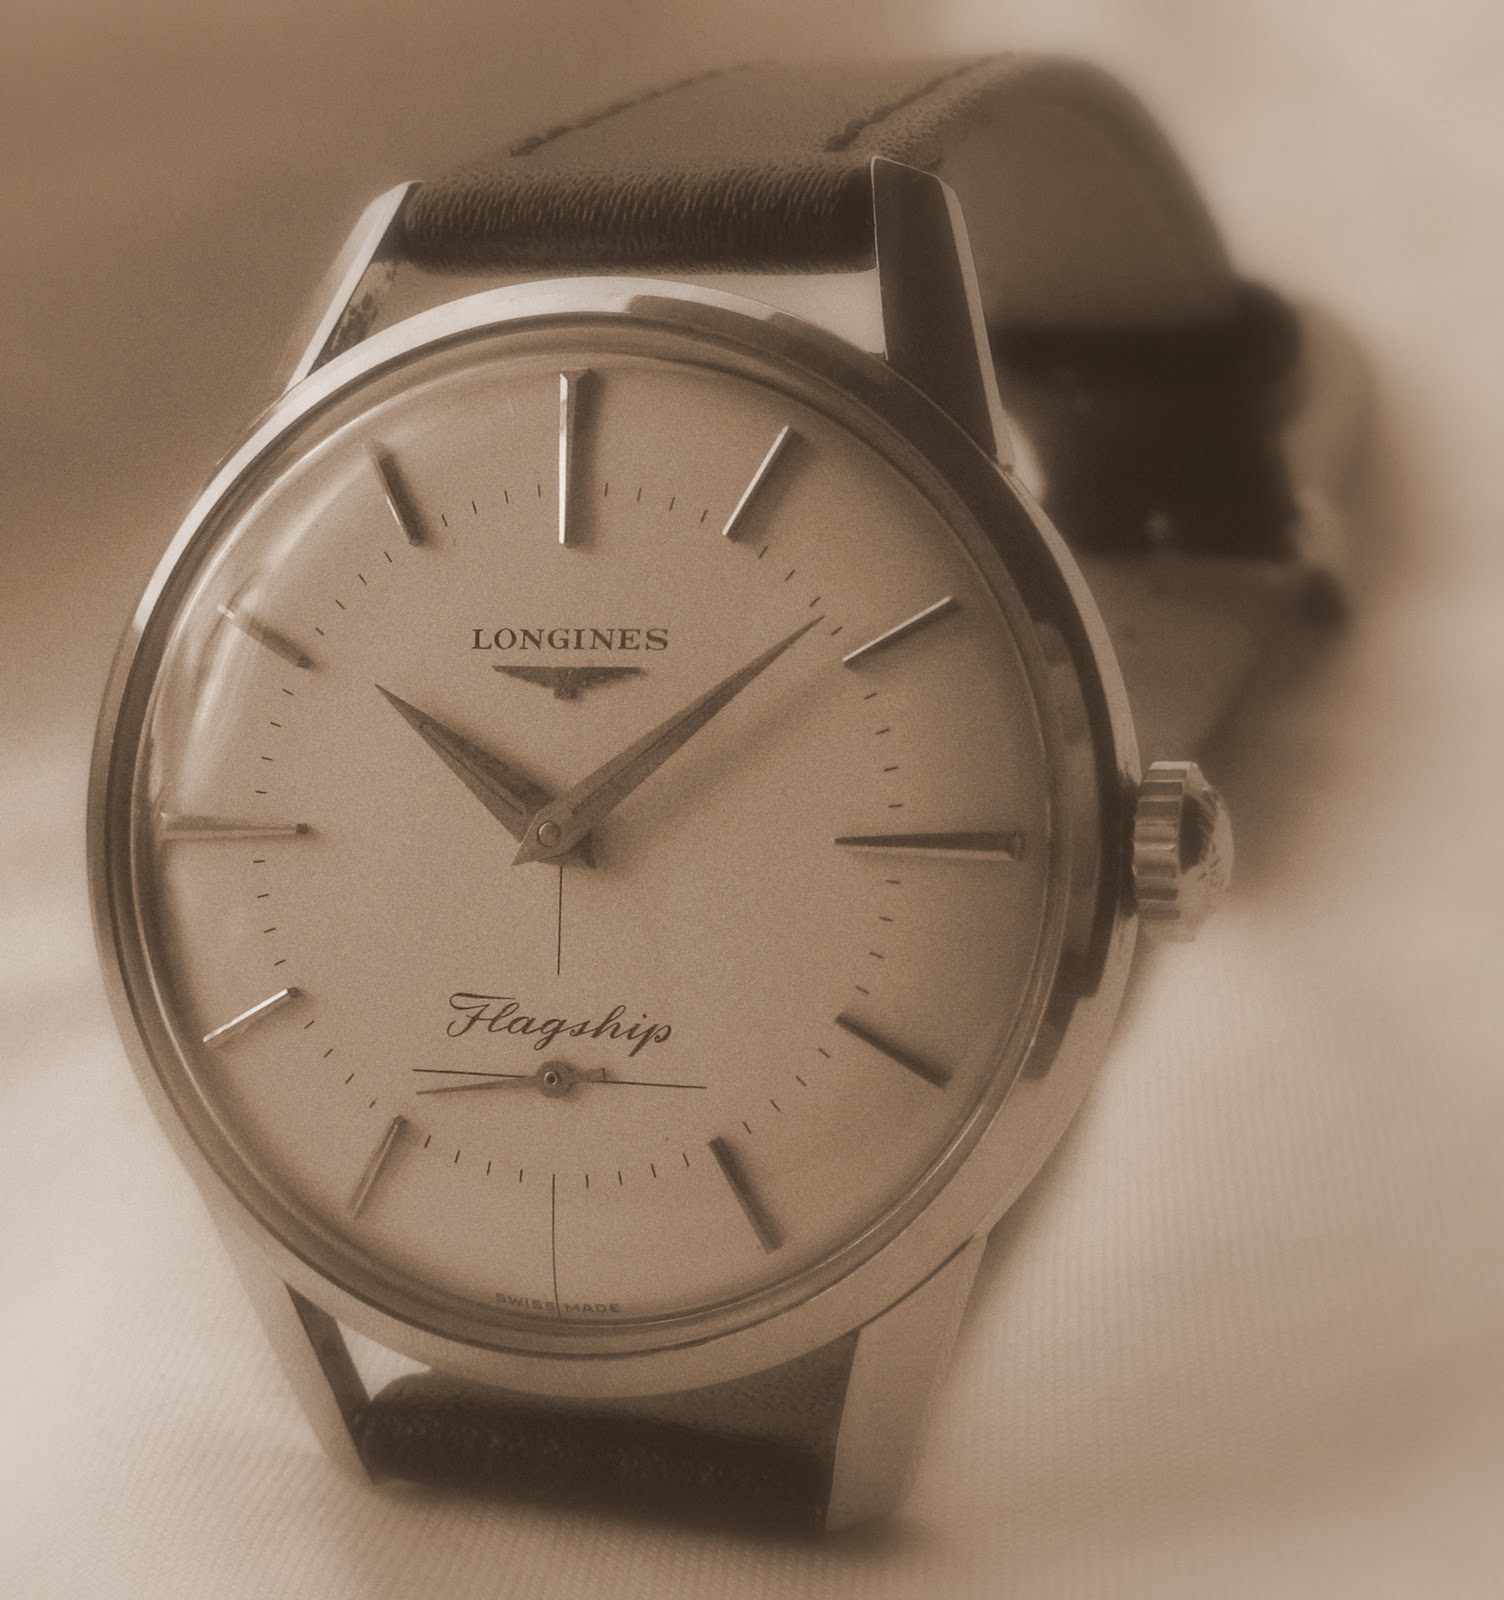 Andy B Vintage Watches 1959 Longines Flagship Cal 30l